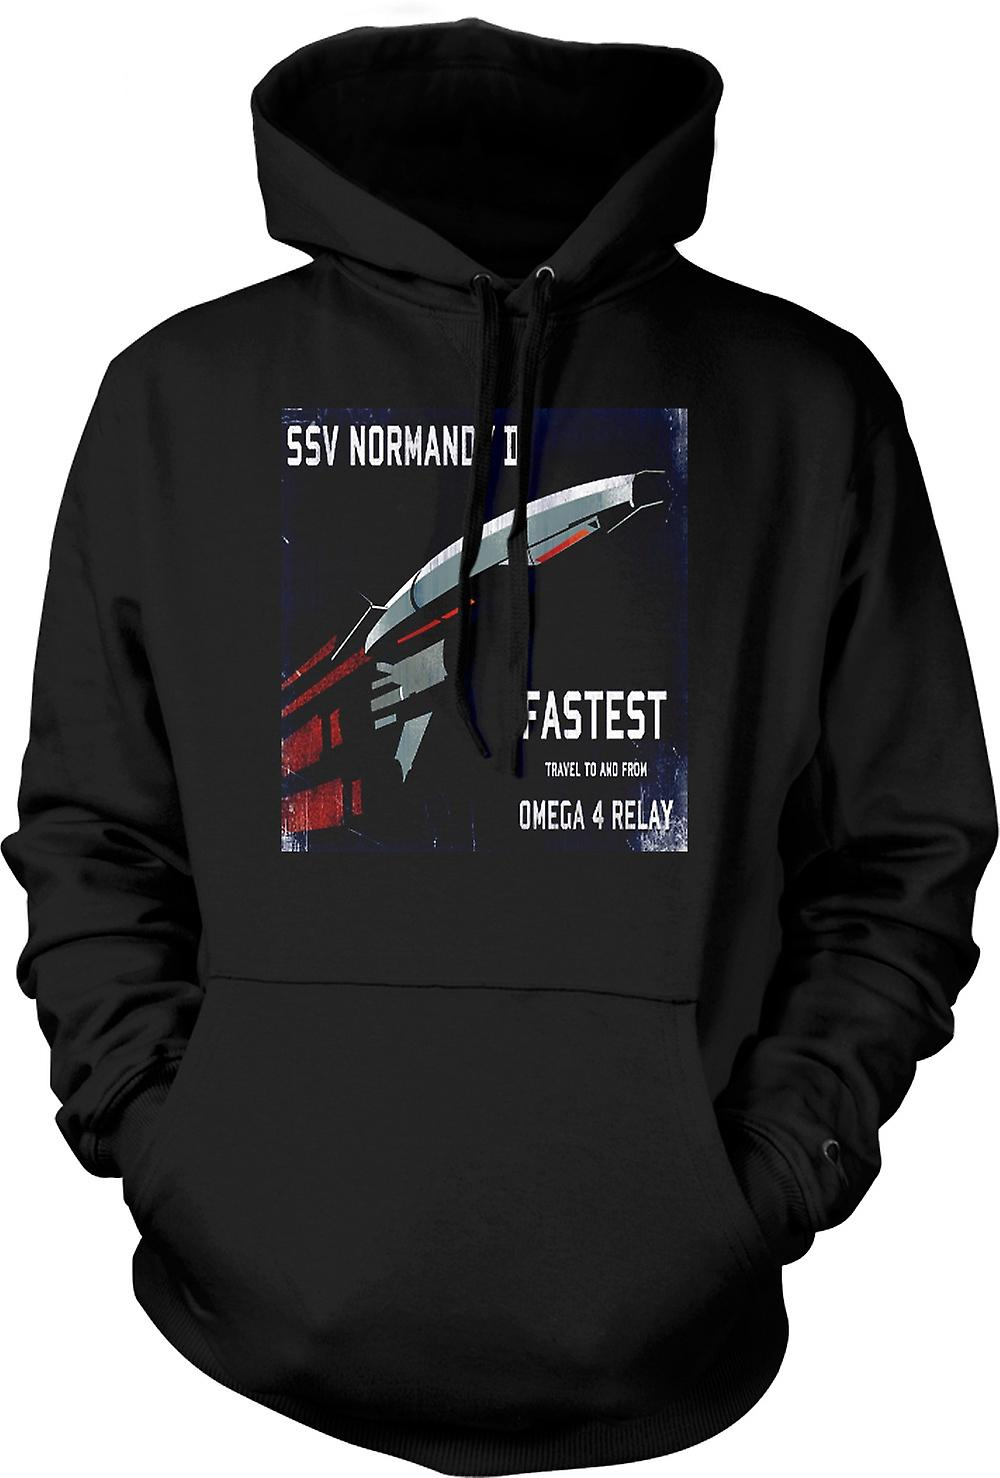 Mens Hoodie - Mass Effect Ssv Normandy II